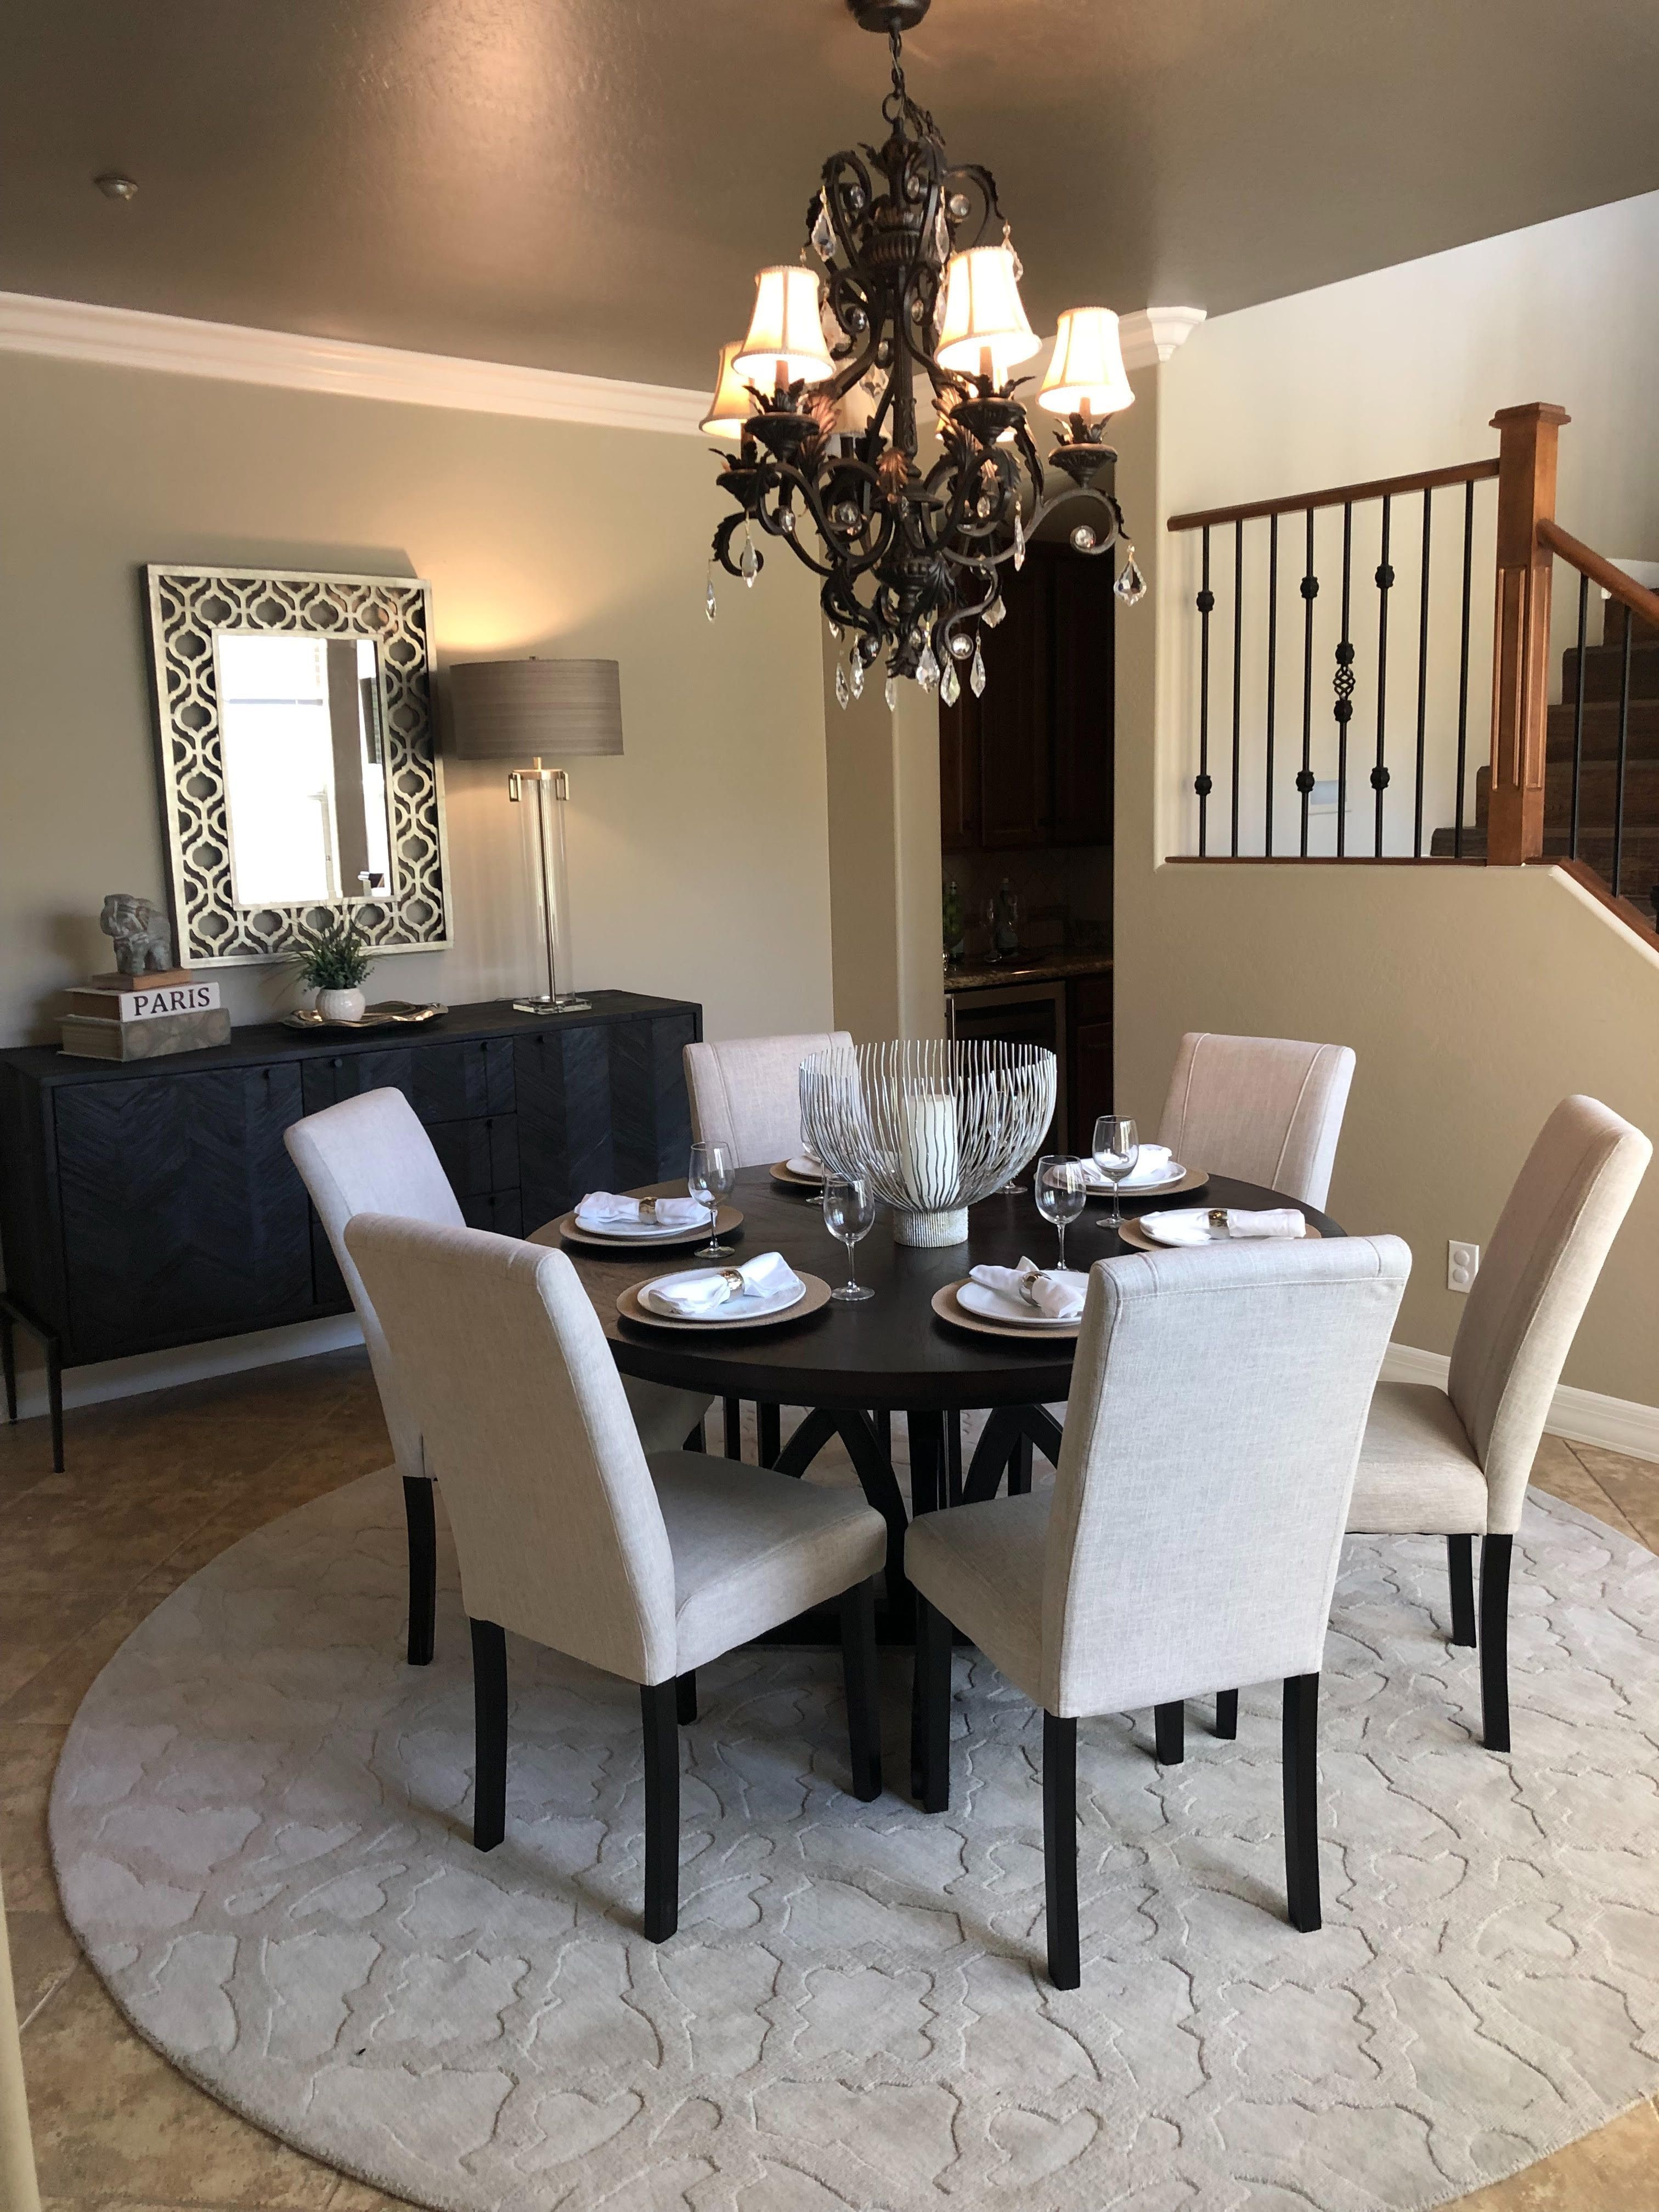 Using Place Settings In A Dining Room Is A Great Touch For